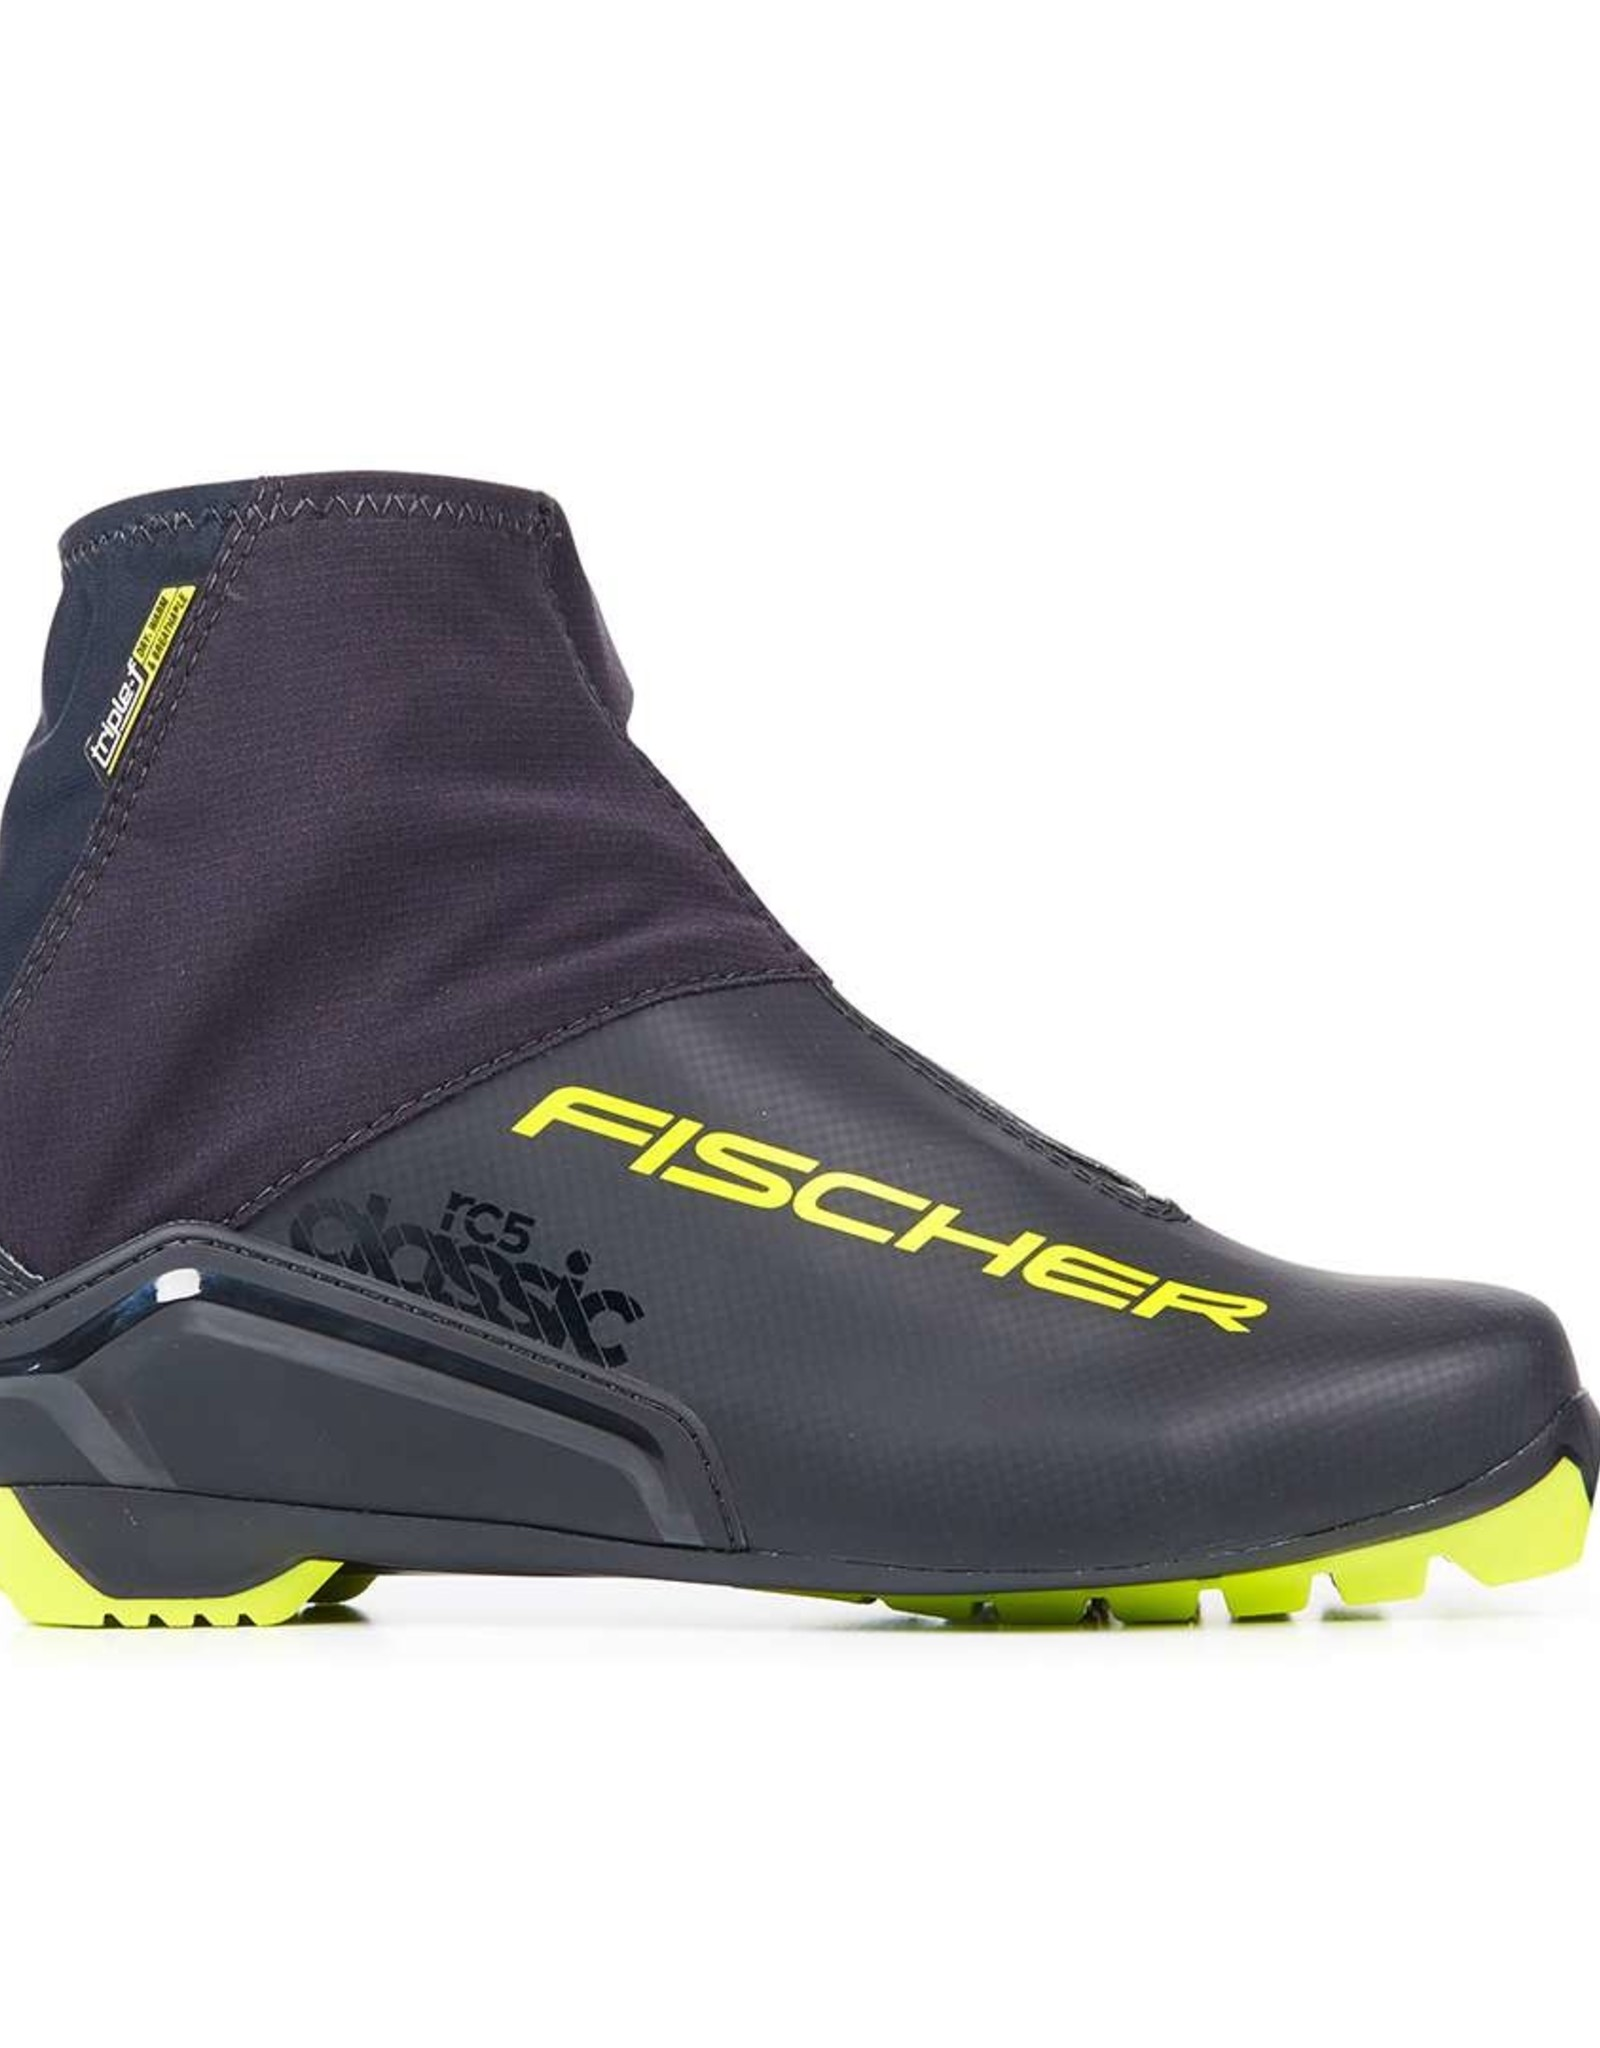 Fischer RC5 Classic Turnamic Boot